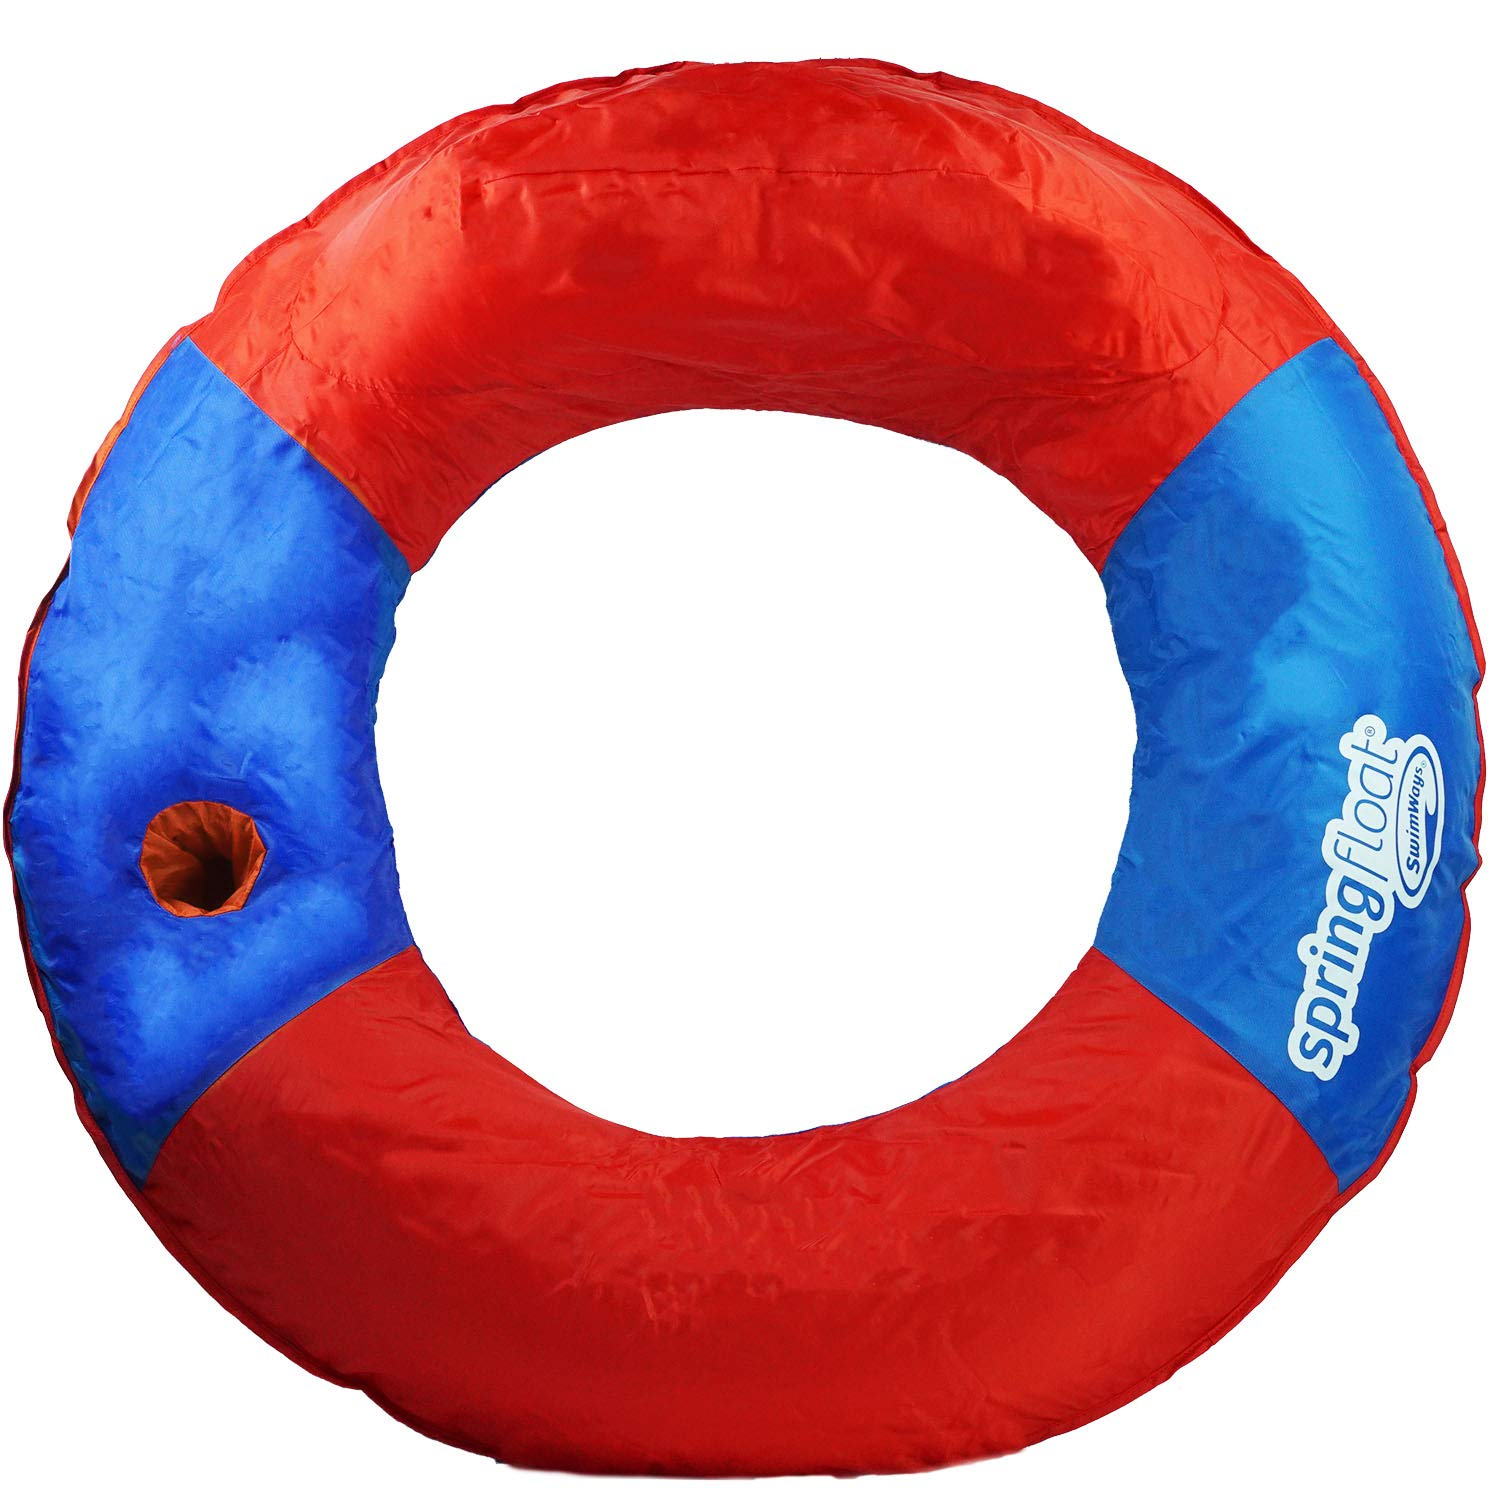 Swimway 36'' Red and Blue Swimming Pool Inflatable Sun Tube Lounger Spring Float with Cup Holder by Swimway